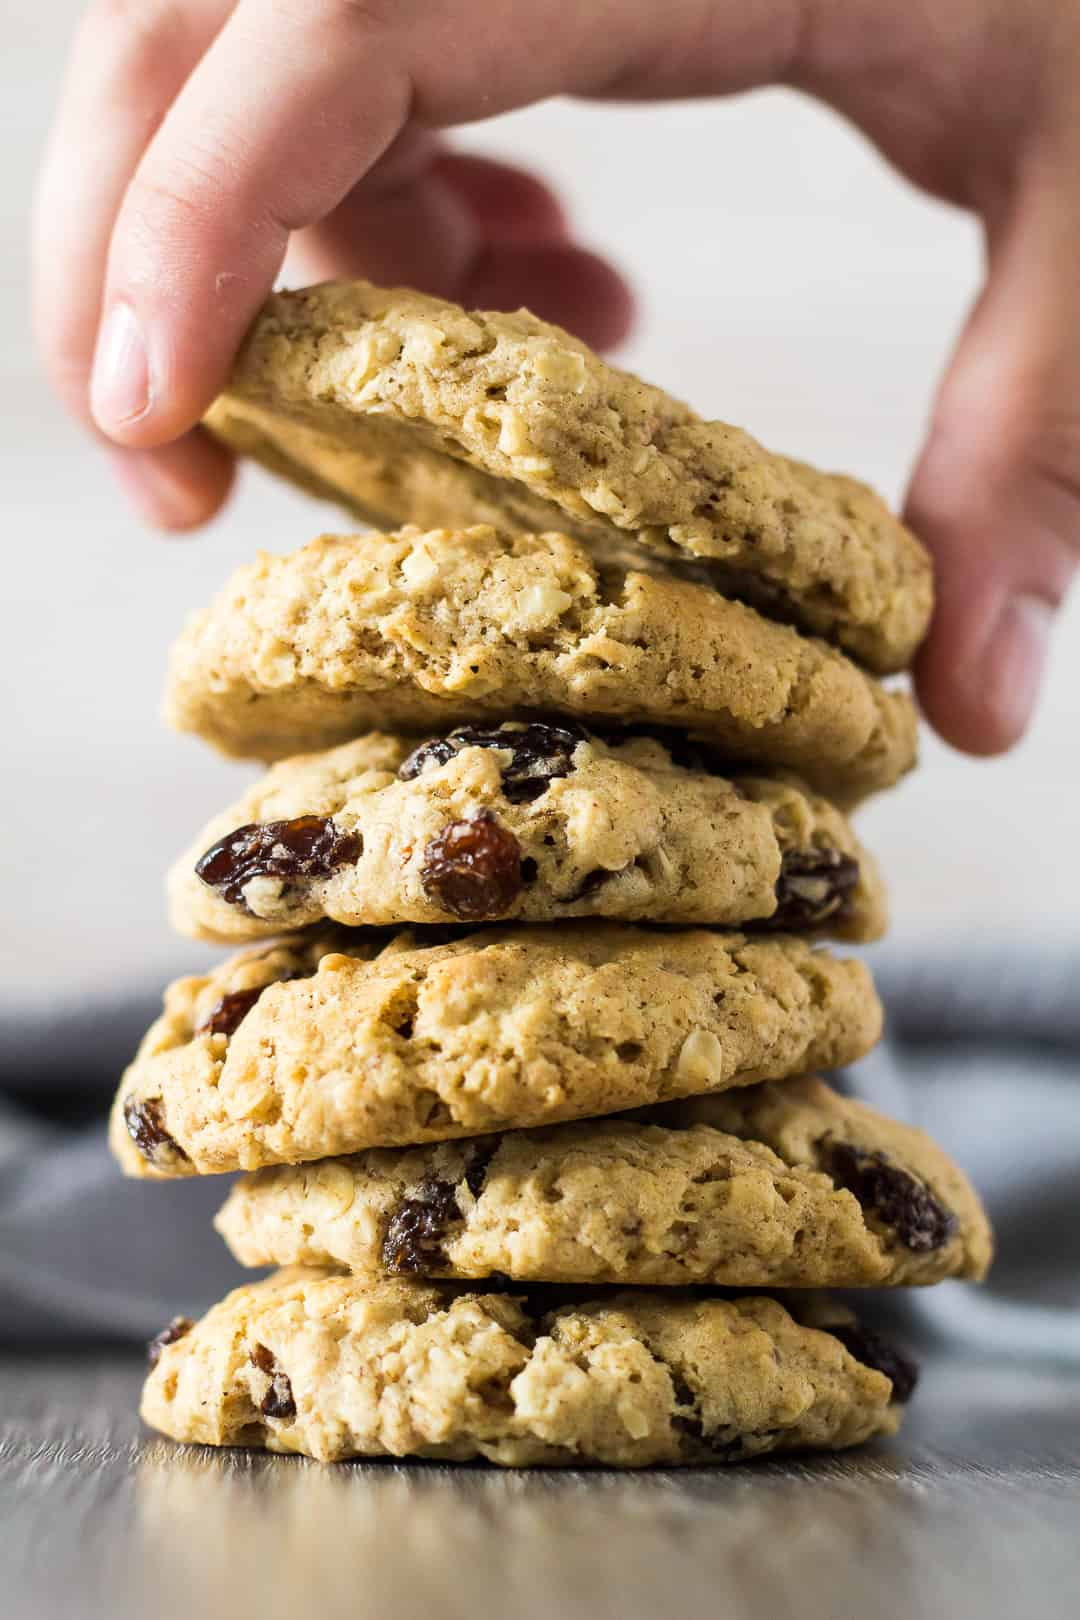 A stack of Oatmeal Raisin Cookies with the top cookie being picked up by hand.